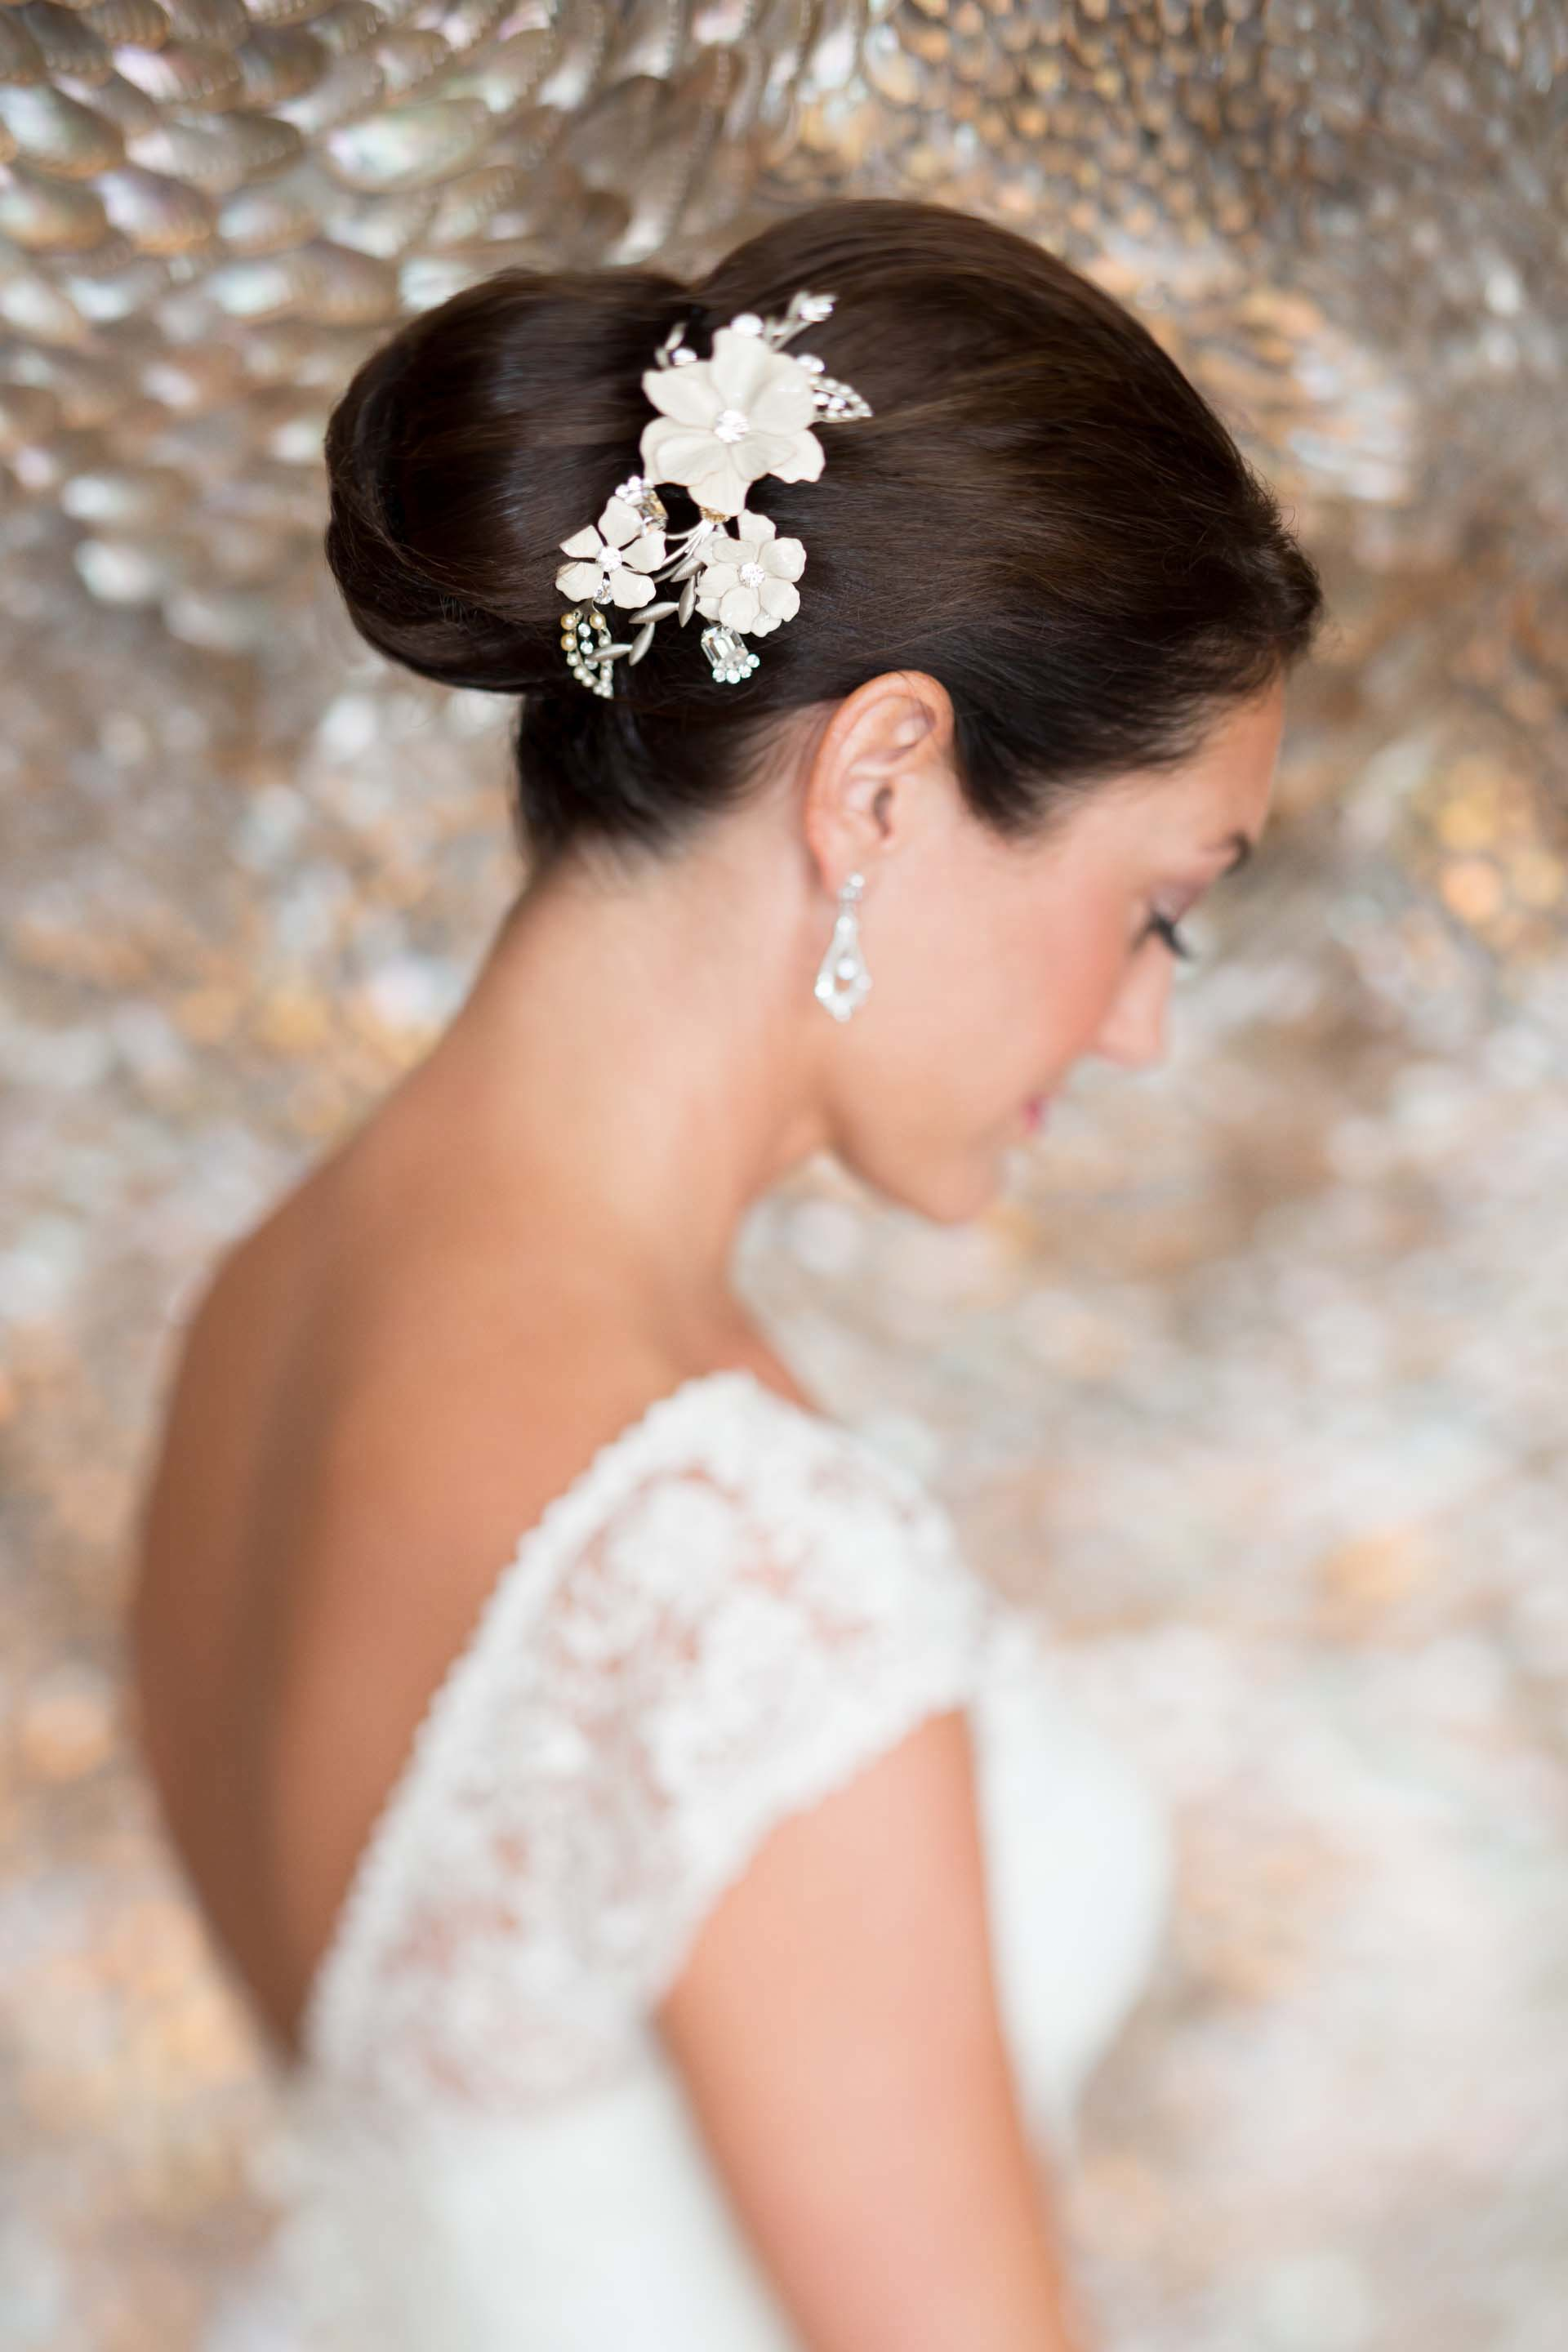 floral headpiece attached to side of bun, bridal headpiece